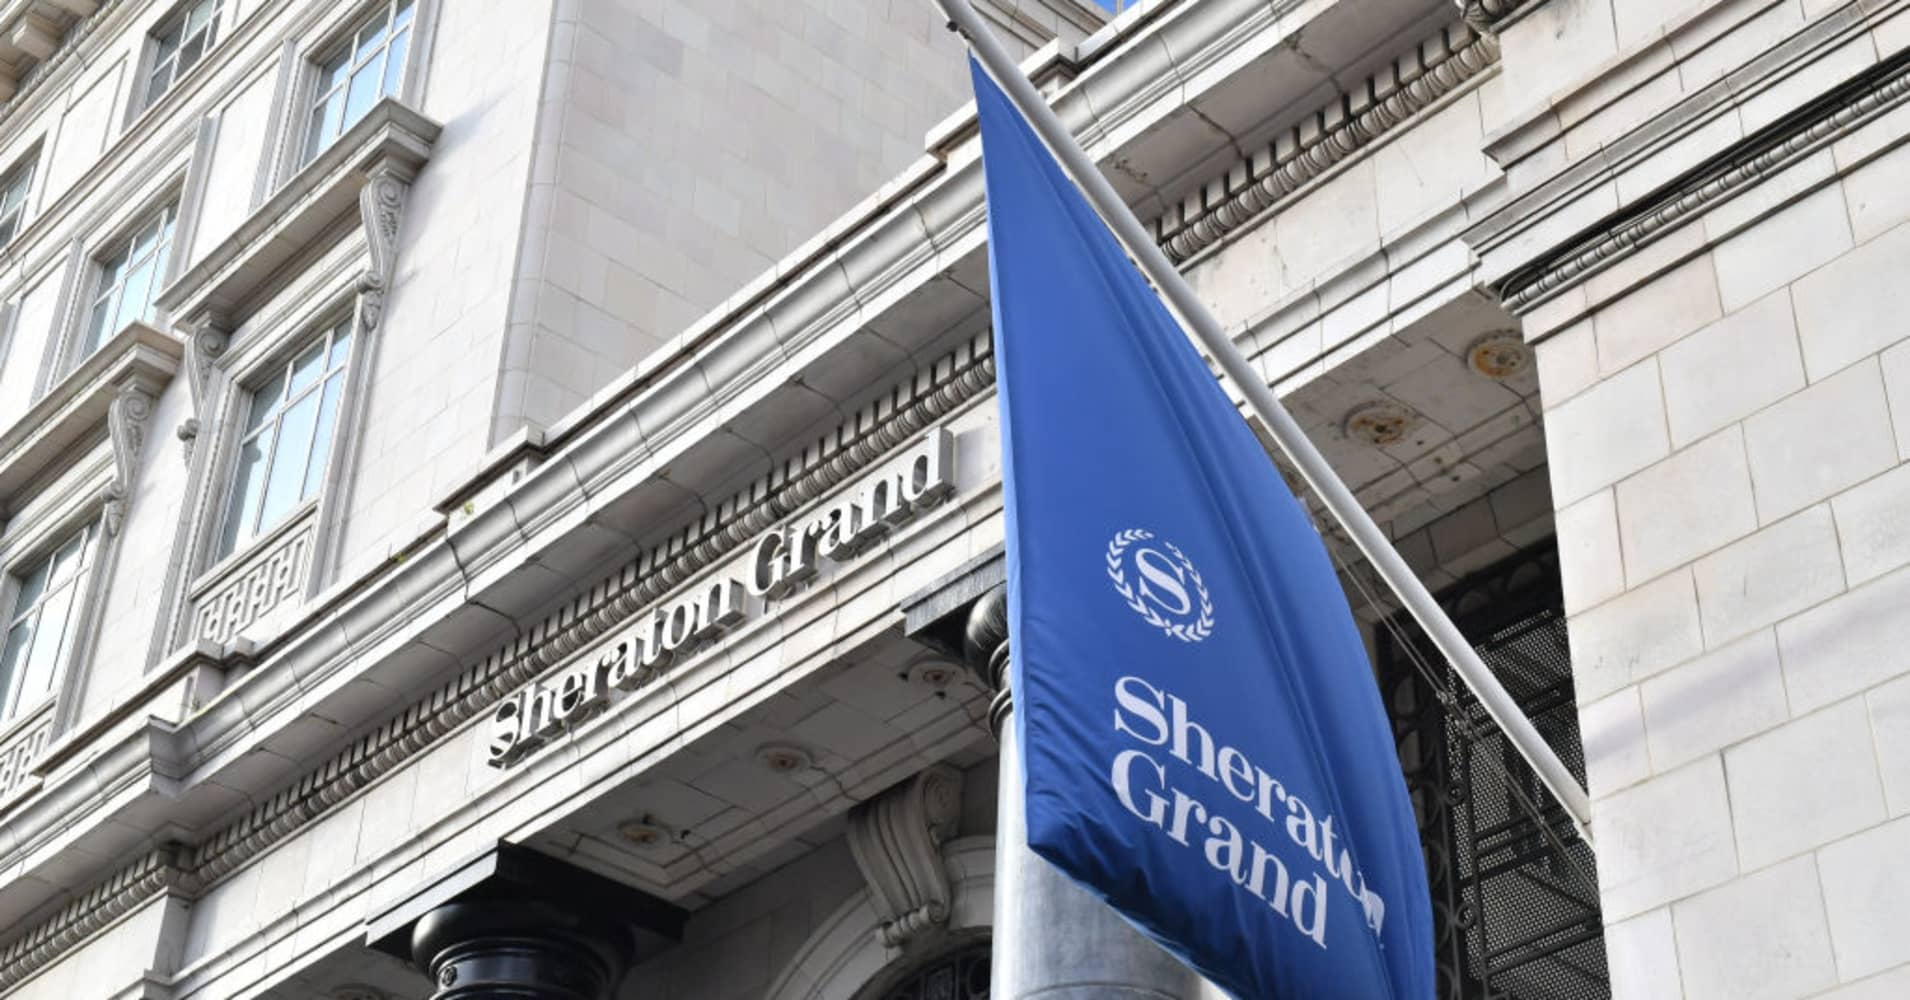 The Park Lane Sheraton Grand in London, a Marriott Starwood hotel. Marriott has announced 500 million guests' data may have been exposed during breaches.